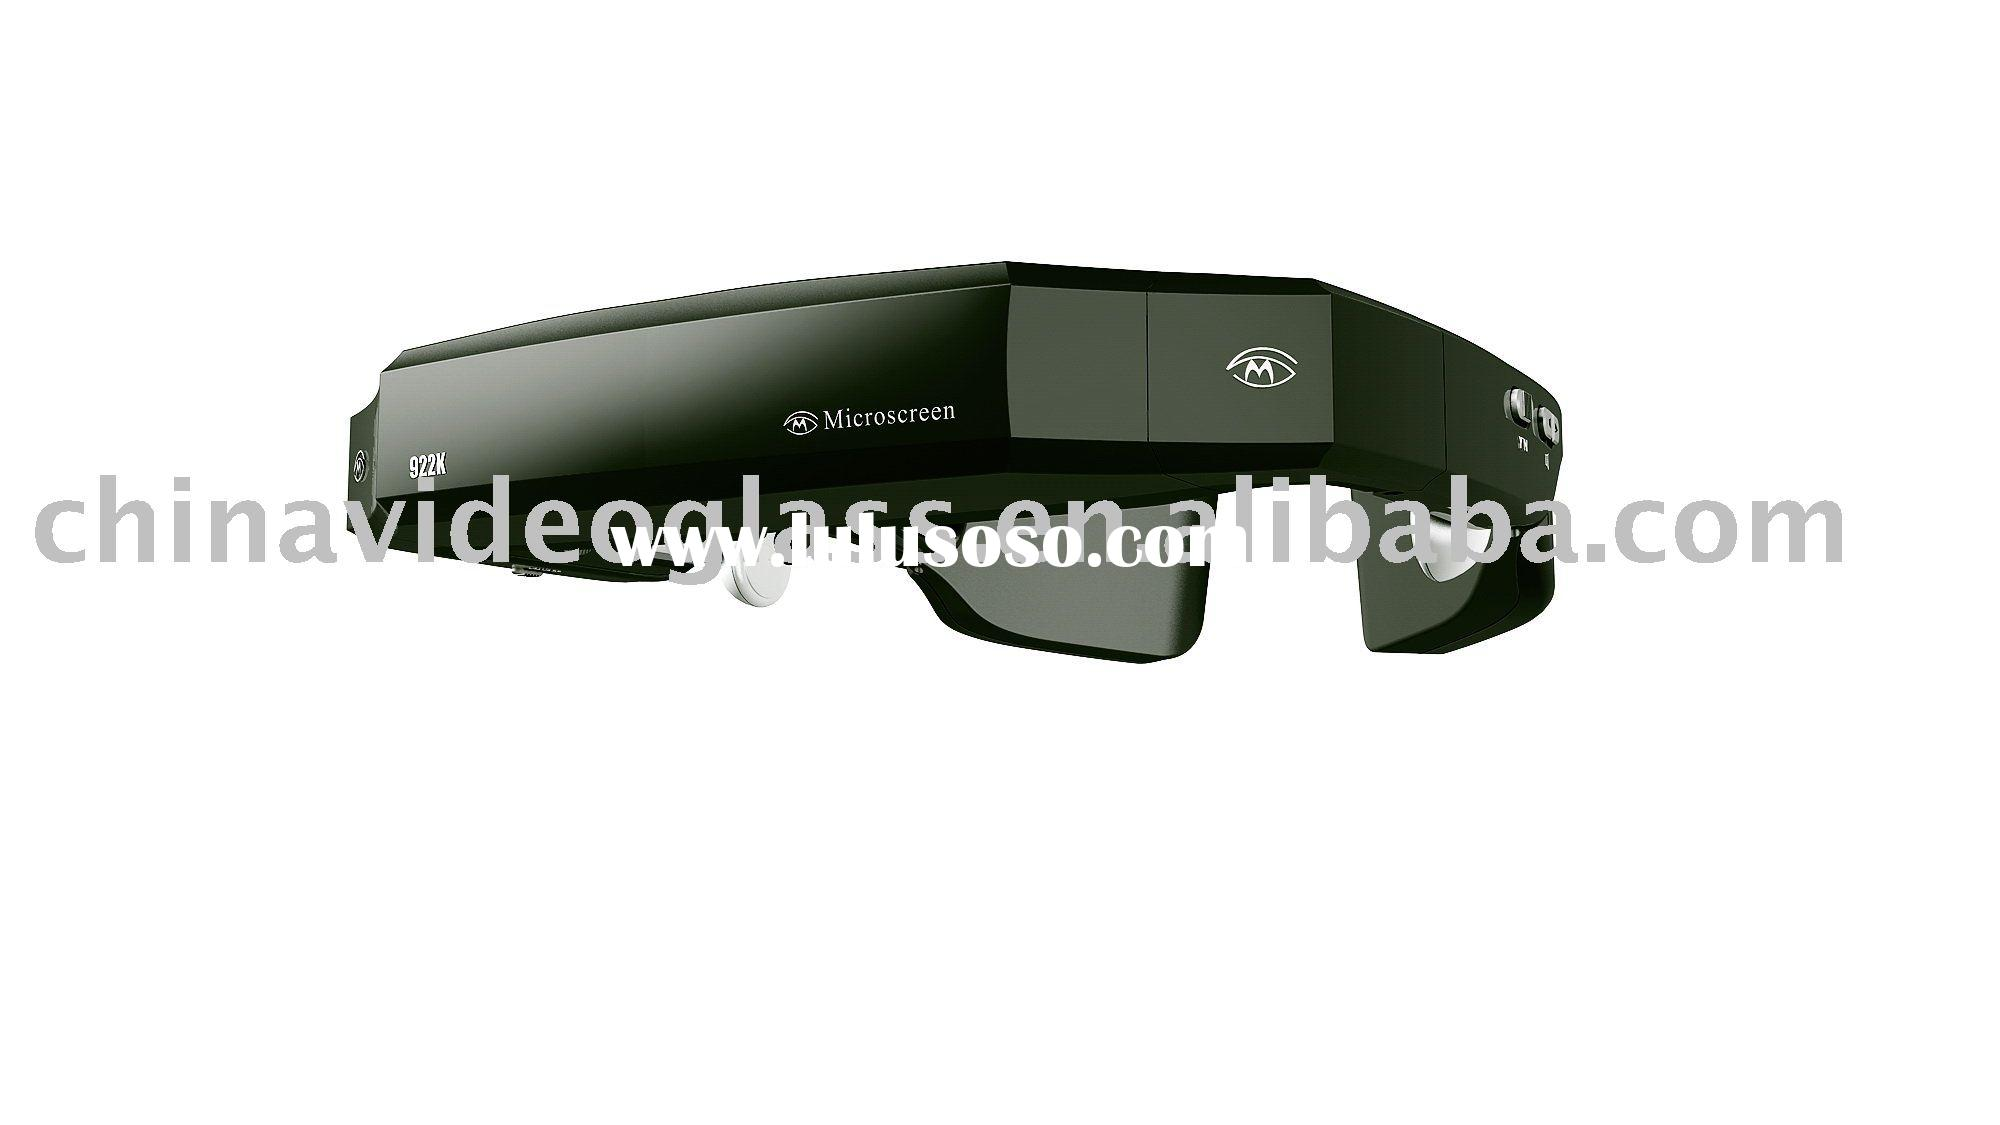 "80"" 3D wireless video glasses"